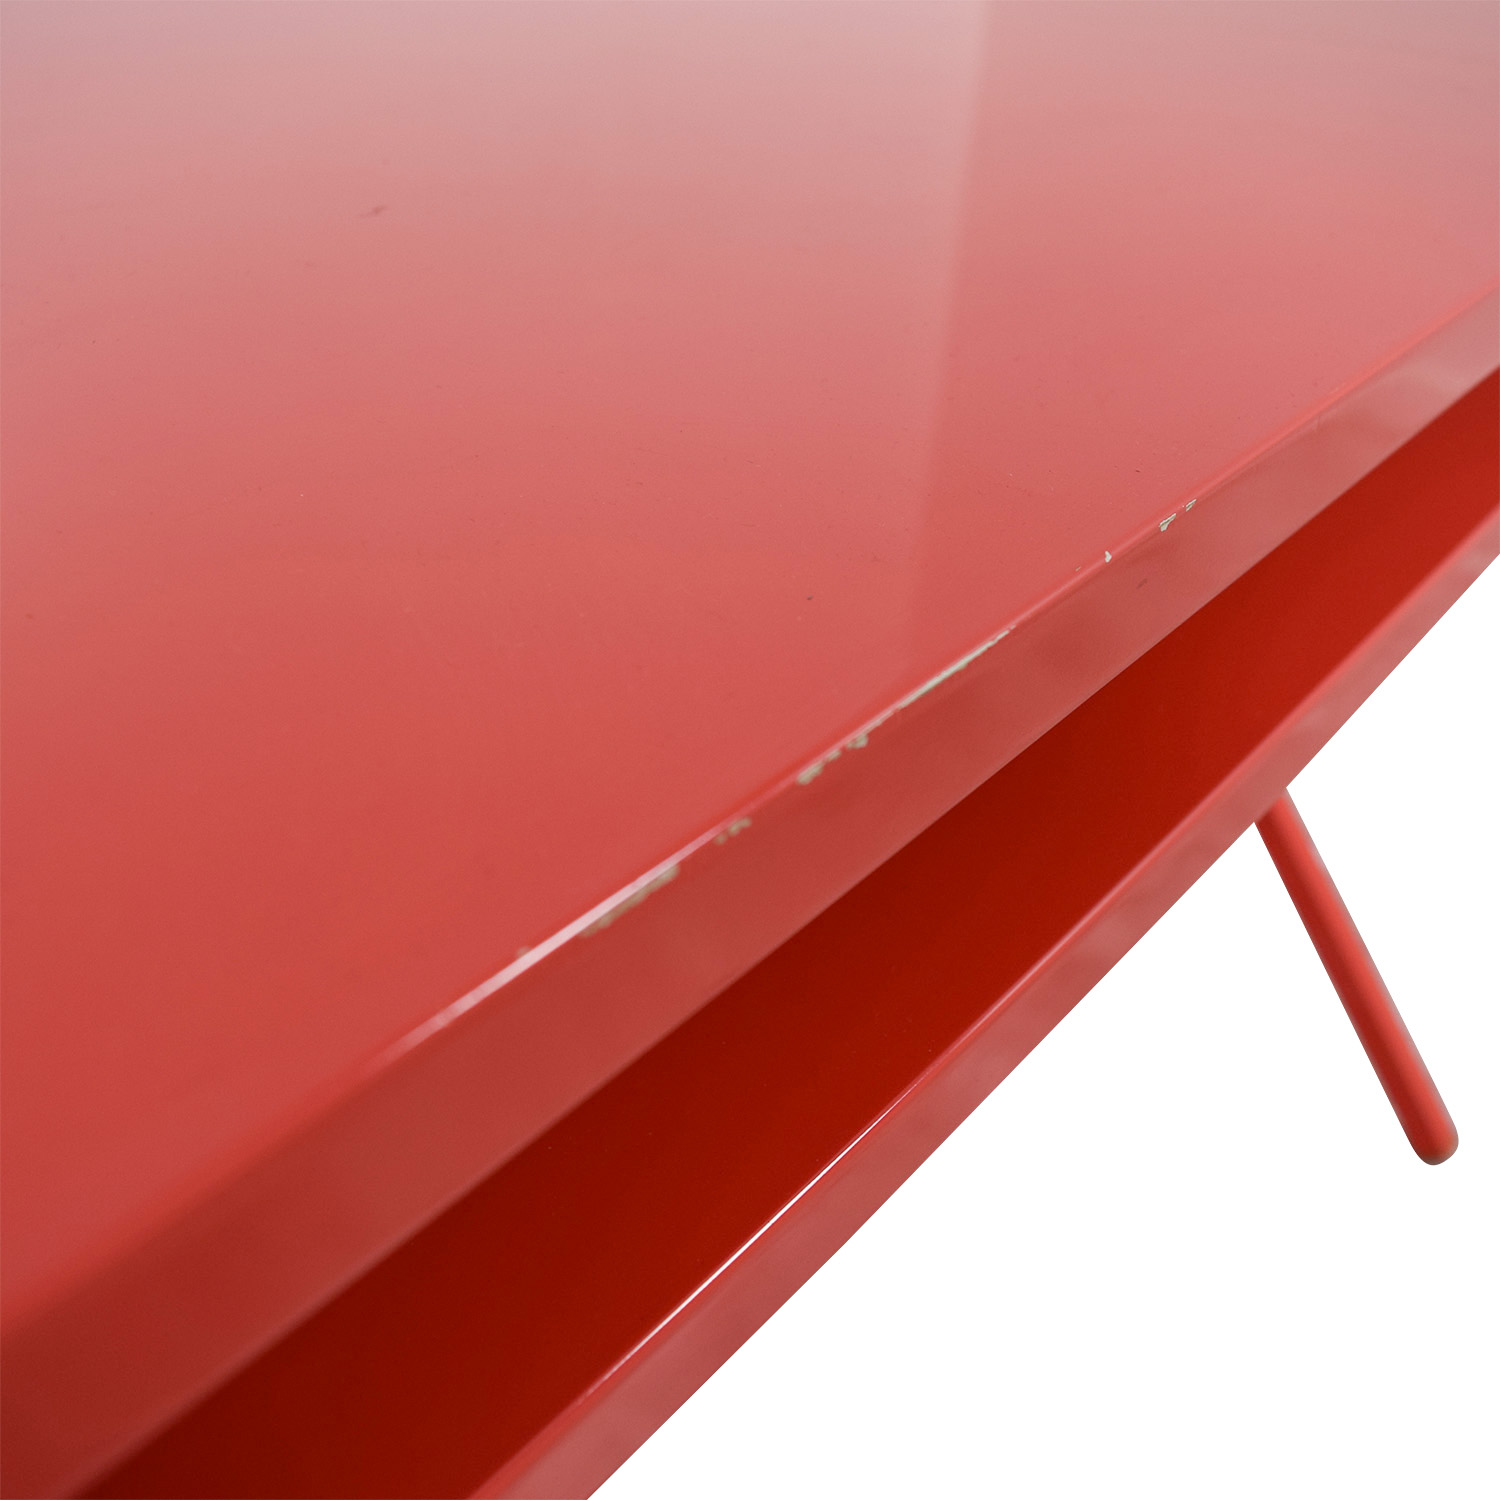 Blu Dot Red Desk 51 Blu Dot